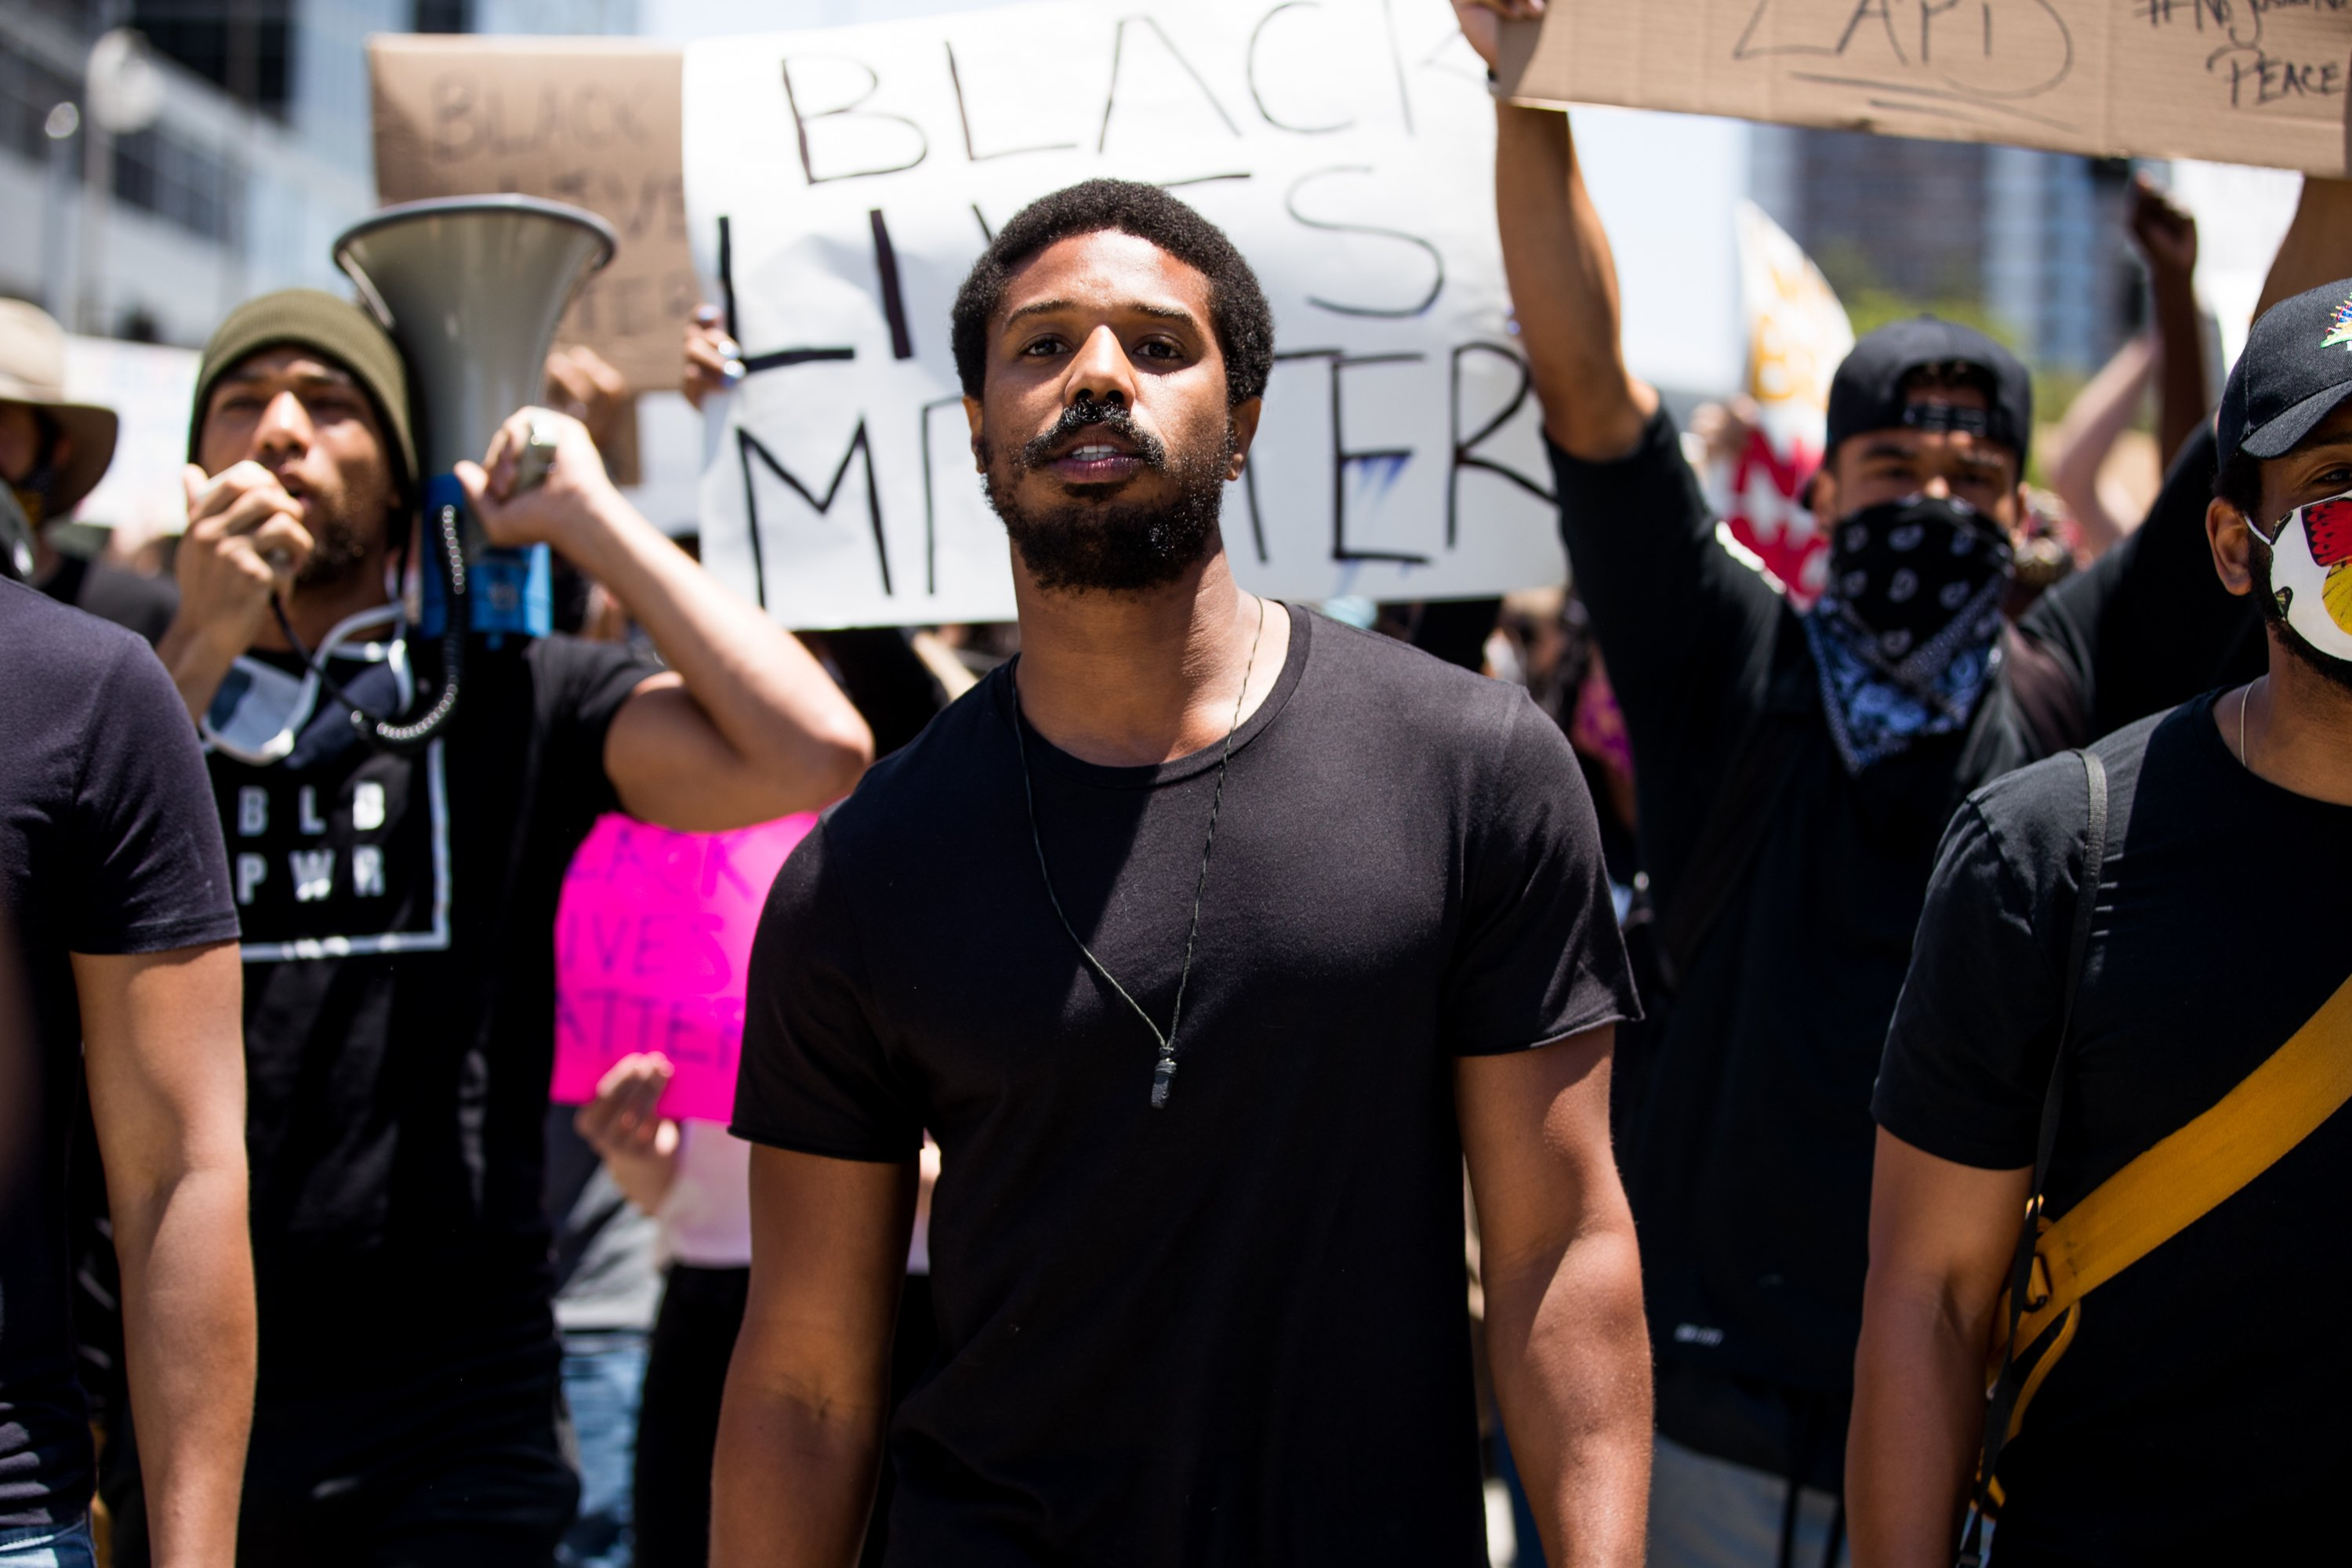 Michael B. Jordan participating in the Hollywood talent agencies march to support Black Lives Matter protests in Beverly Hills, California, in June 2020. | Image: Getty Images.